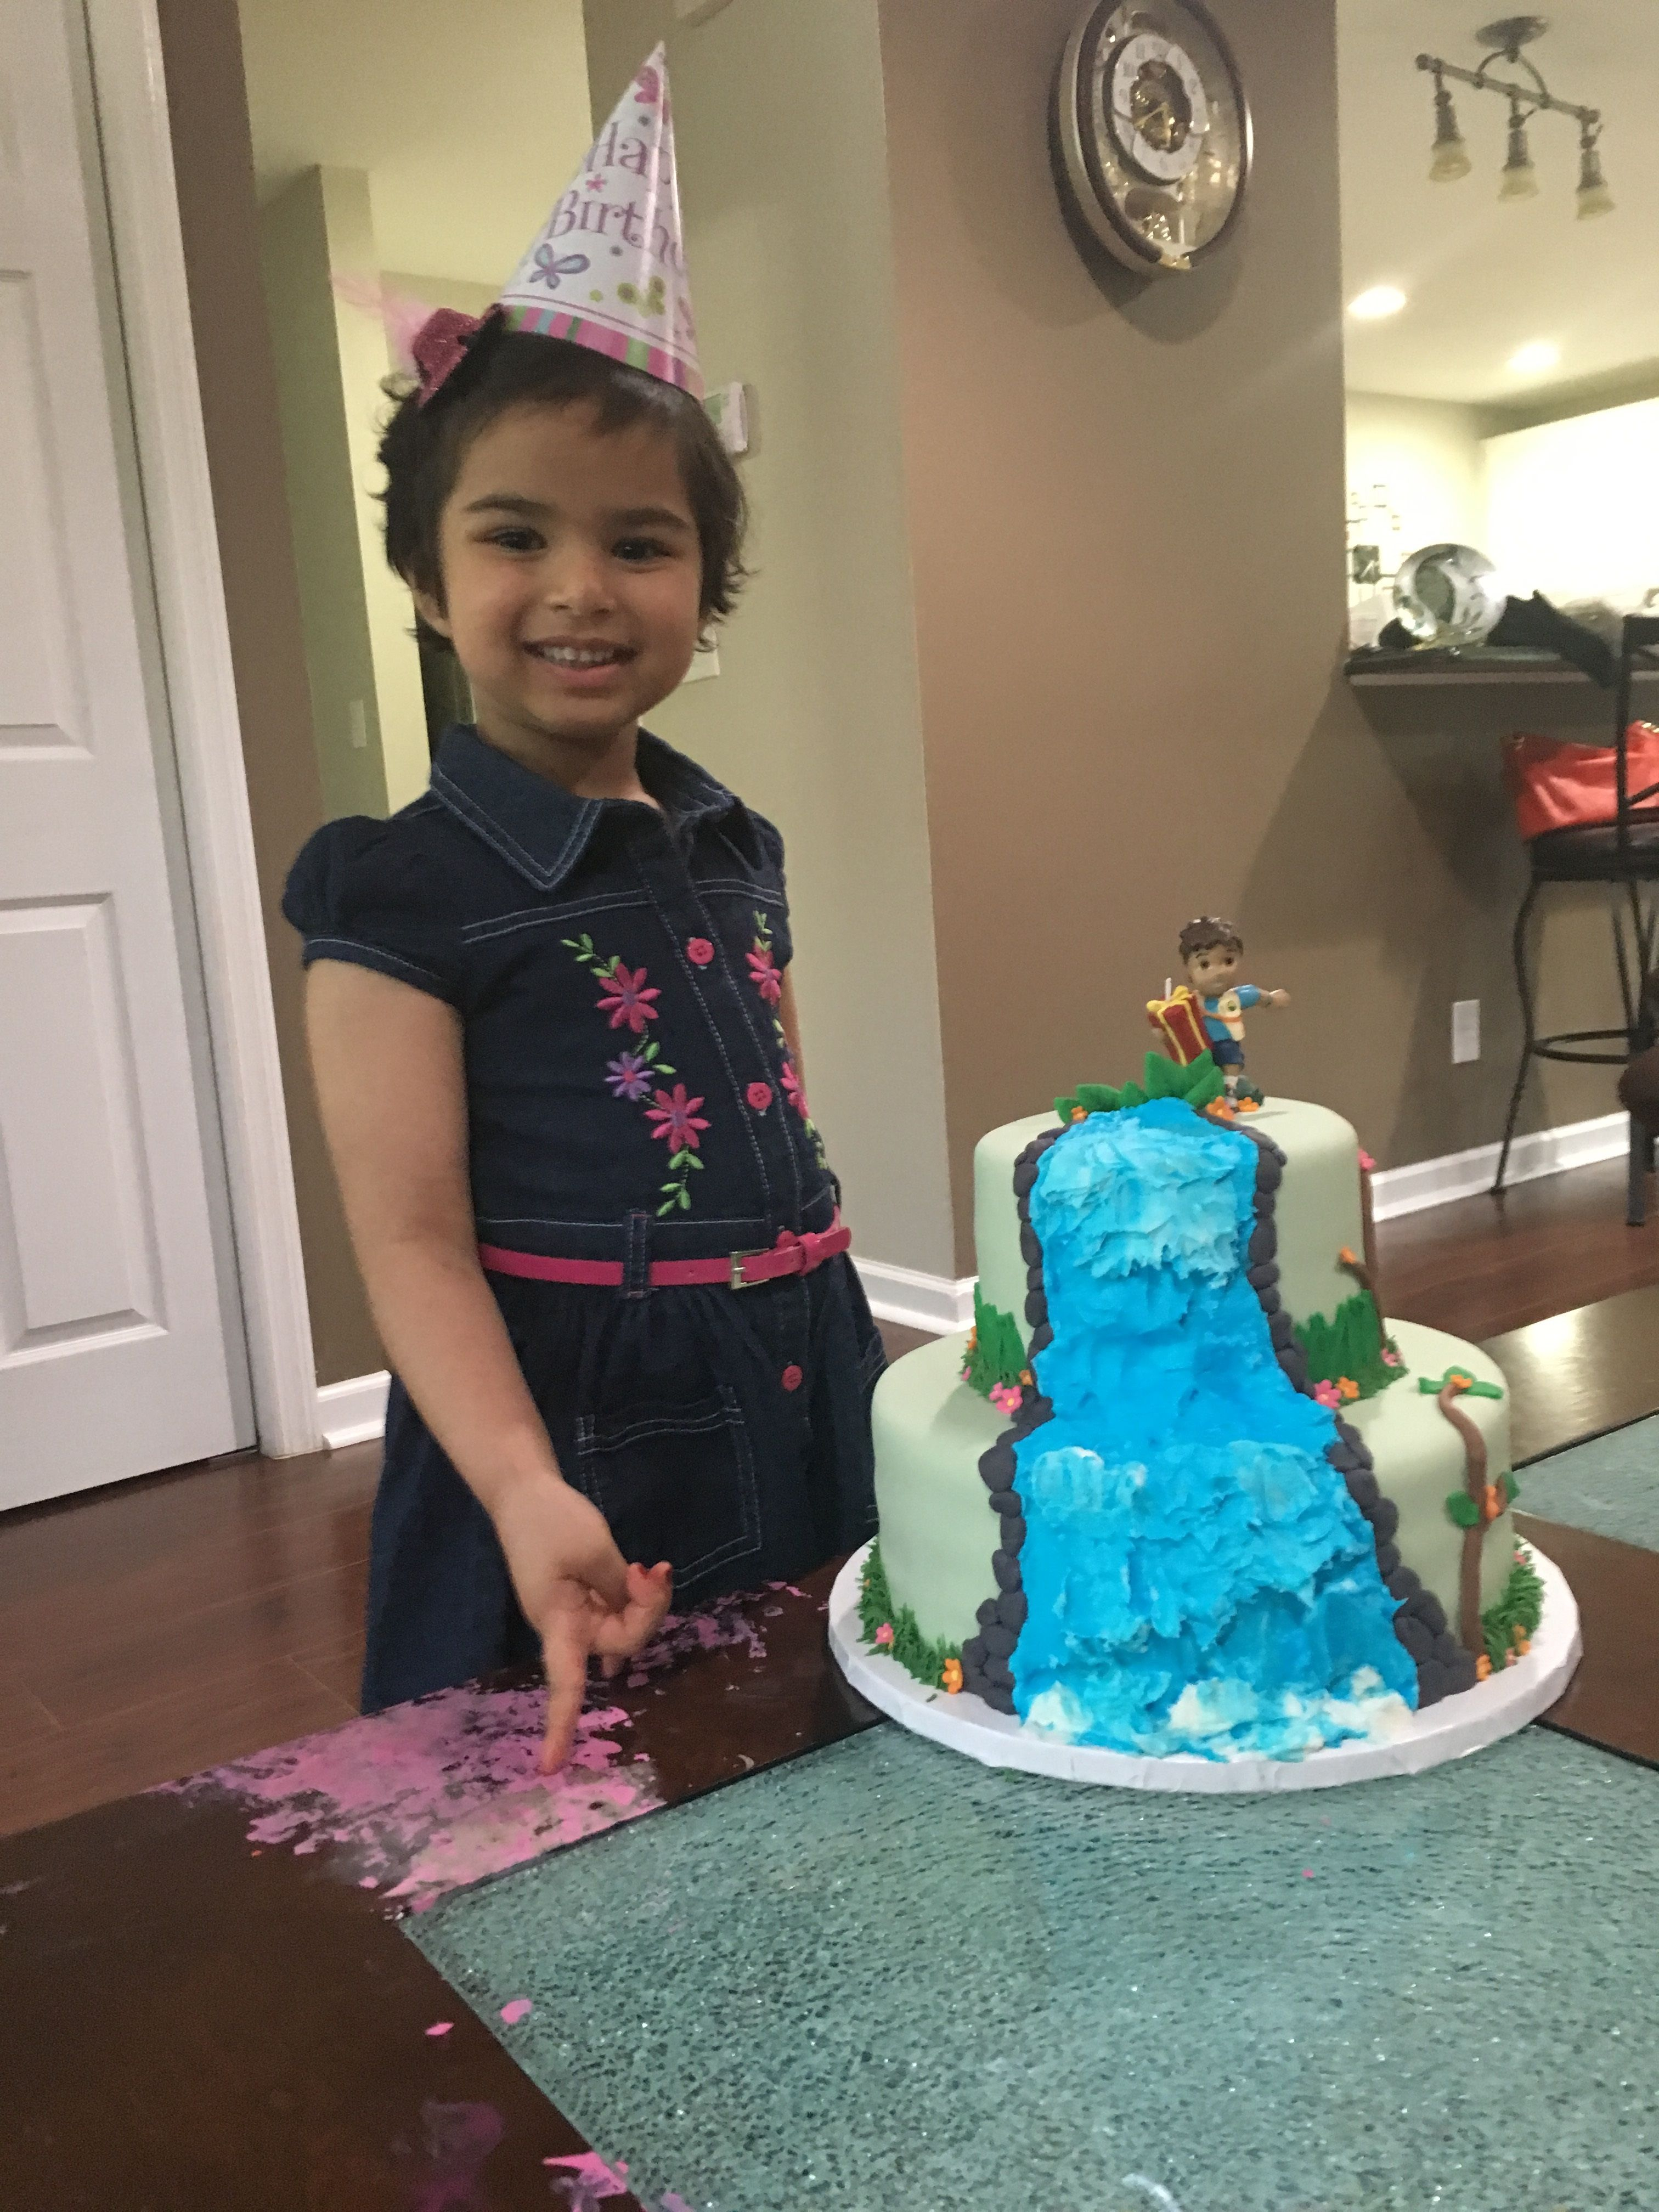 Aashi loved her DiegoCake! Thank you to Jessica Wallace